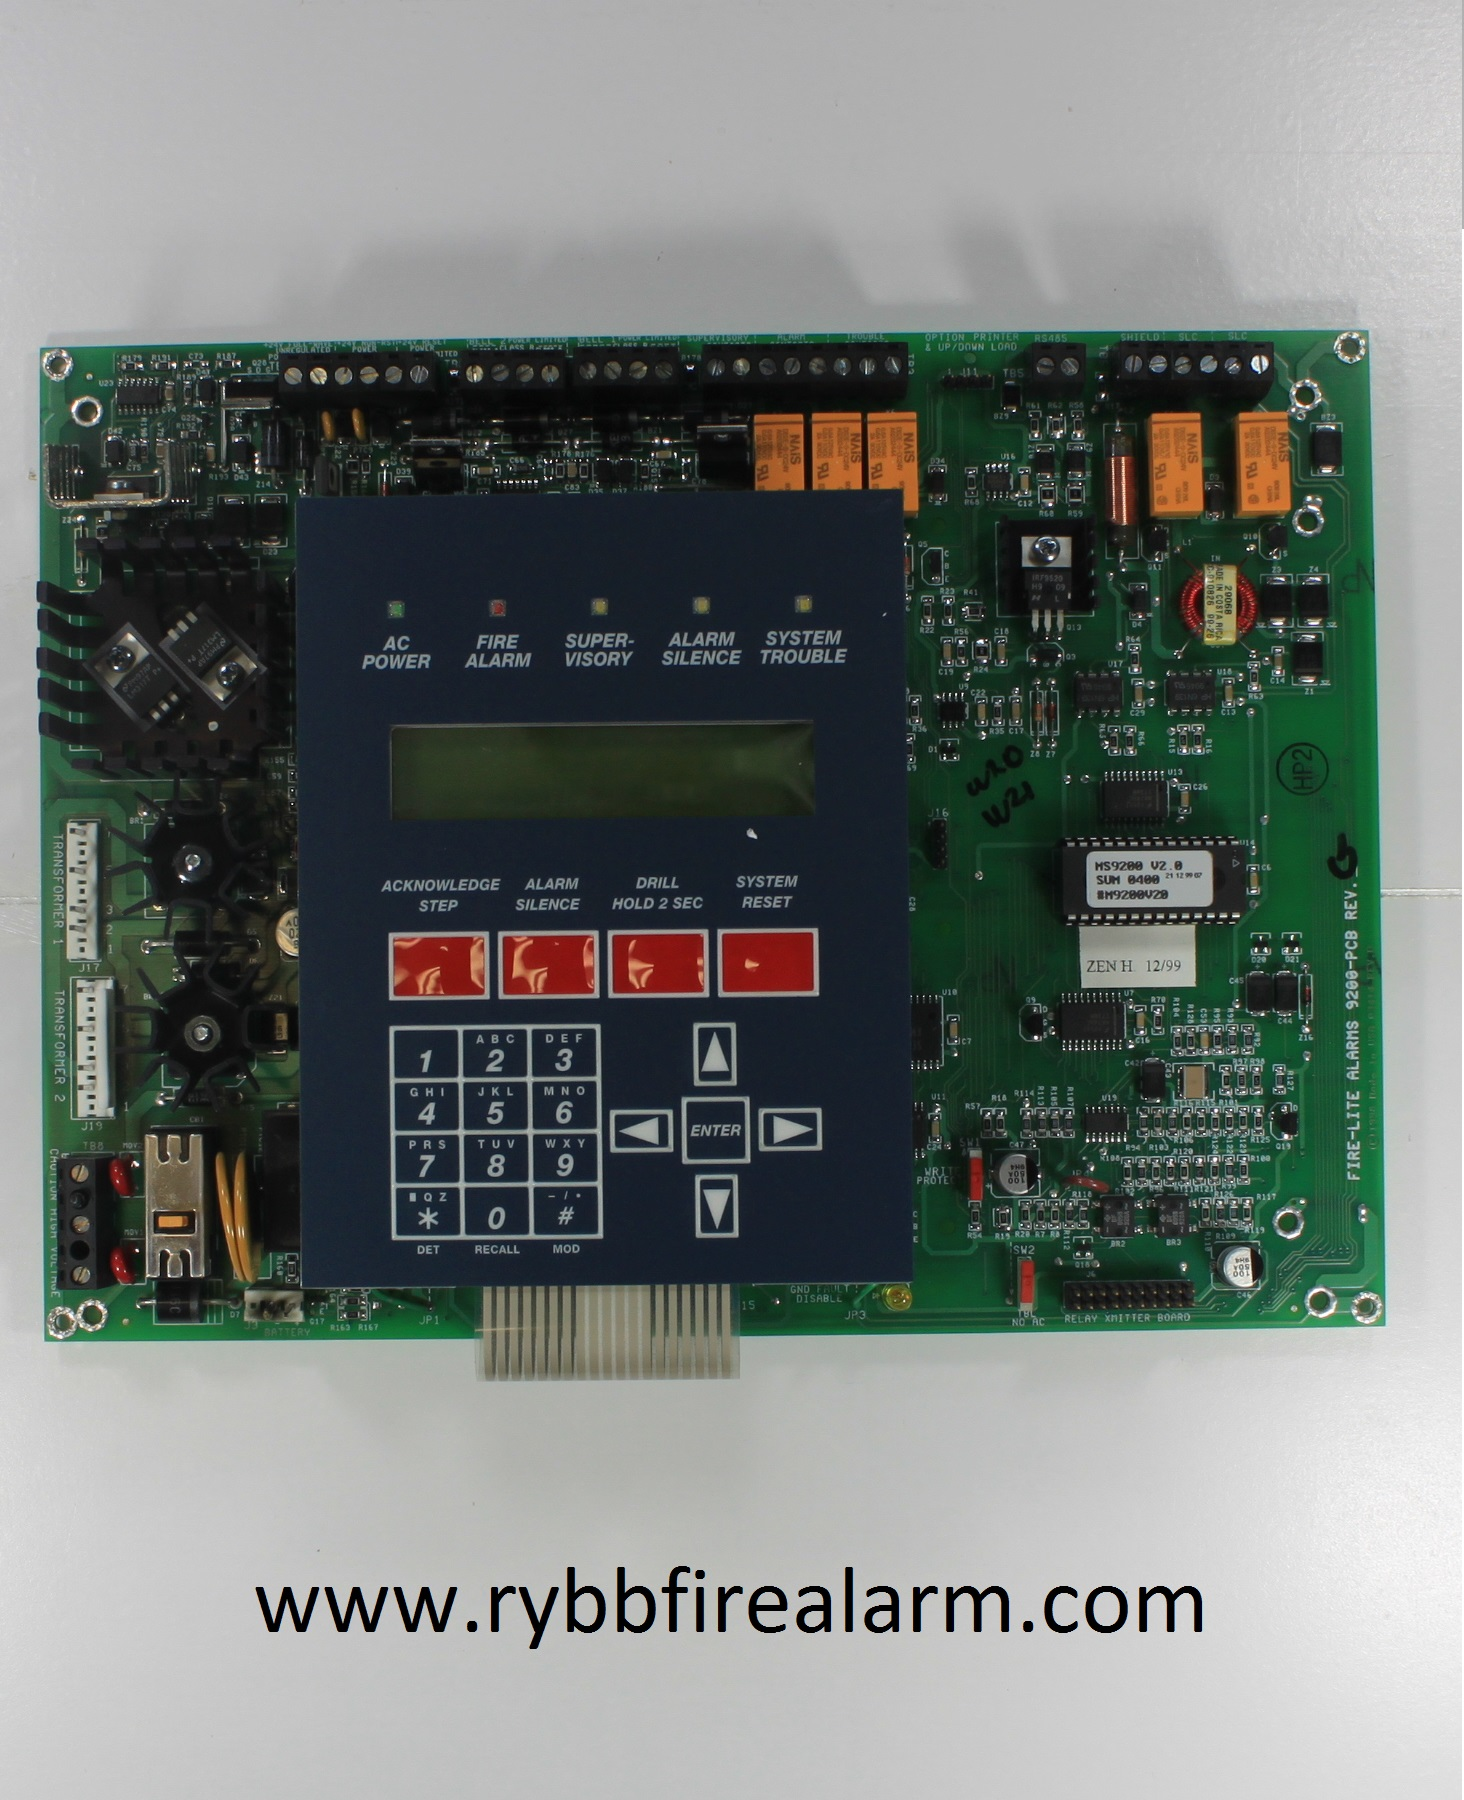 fire lite ms 9200 fire alarm control panel replacement. Black Bedroom Furniture Sets. Home Design Ideas